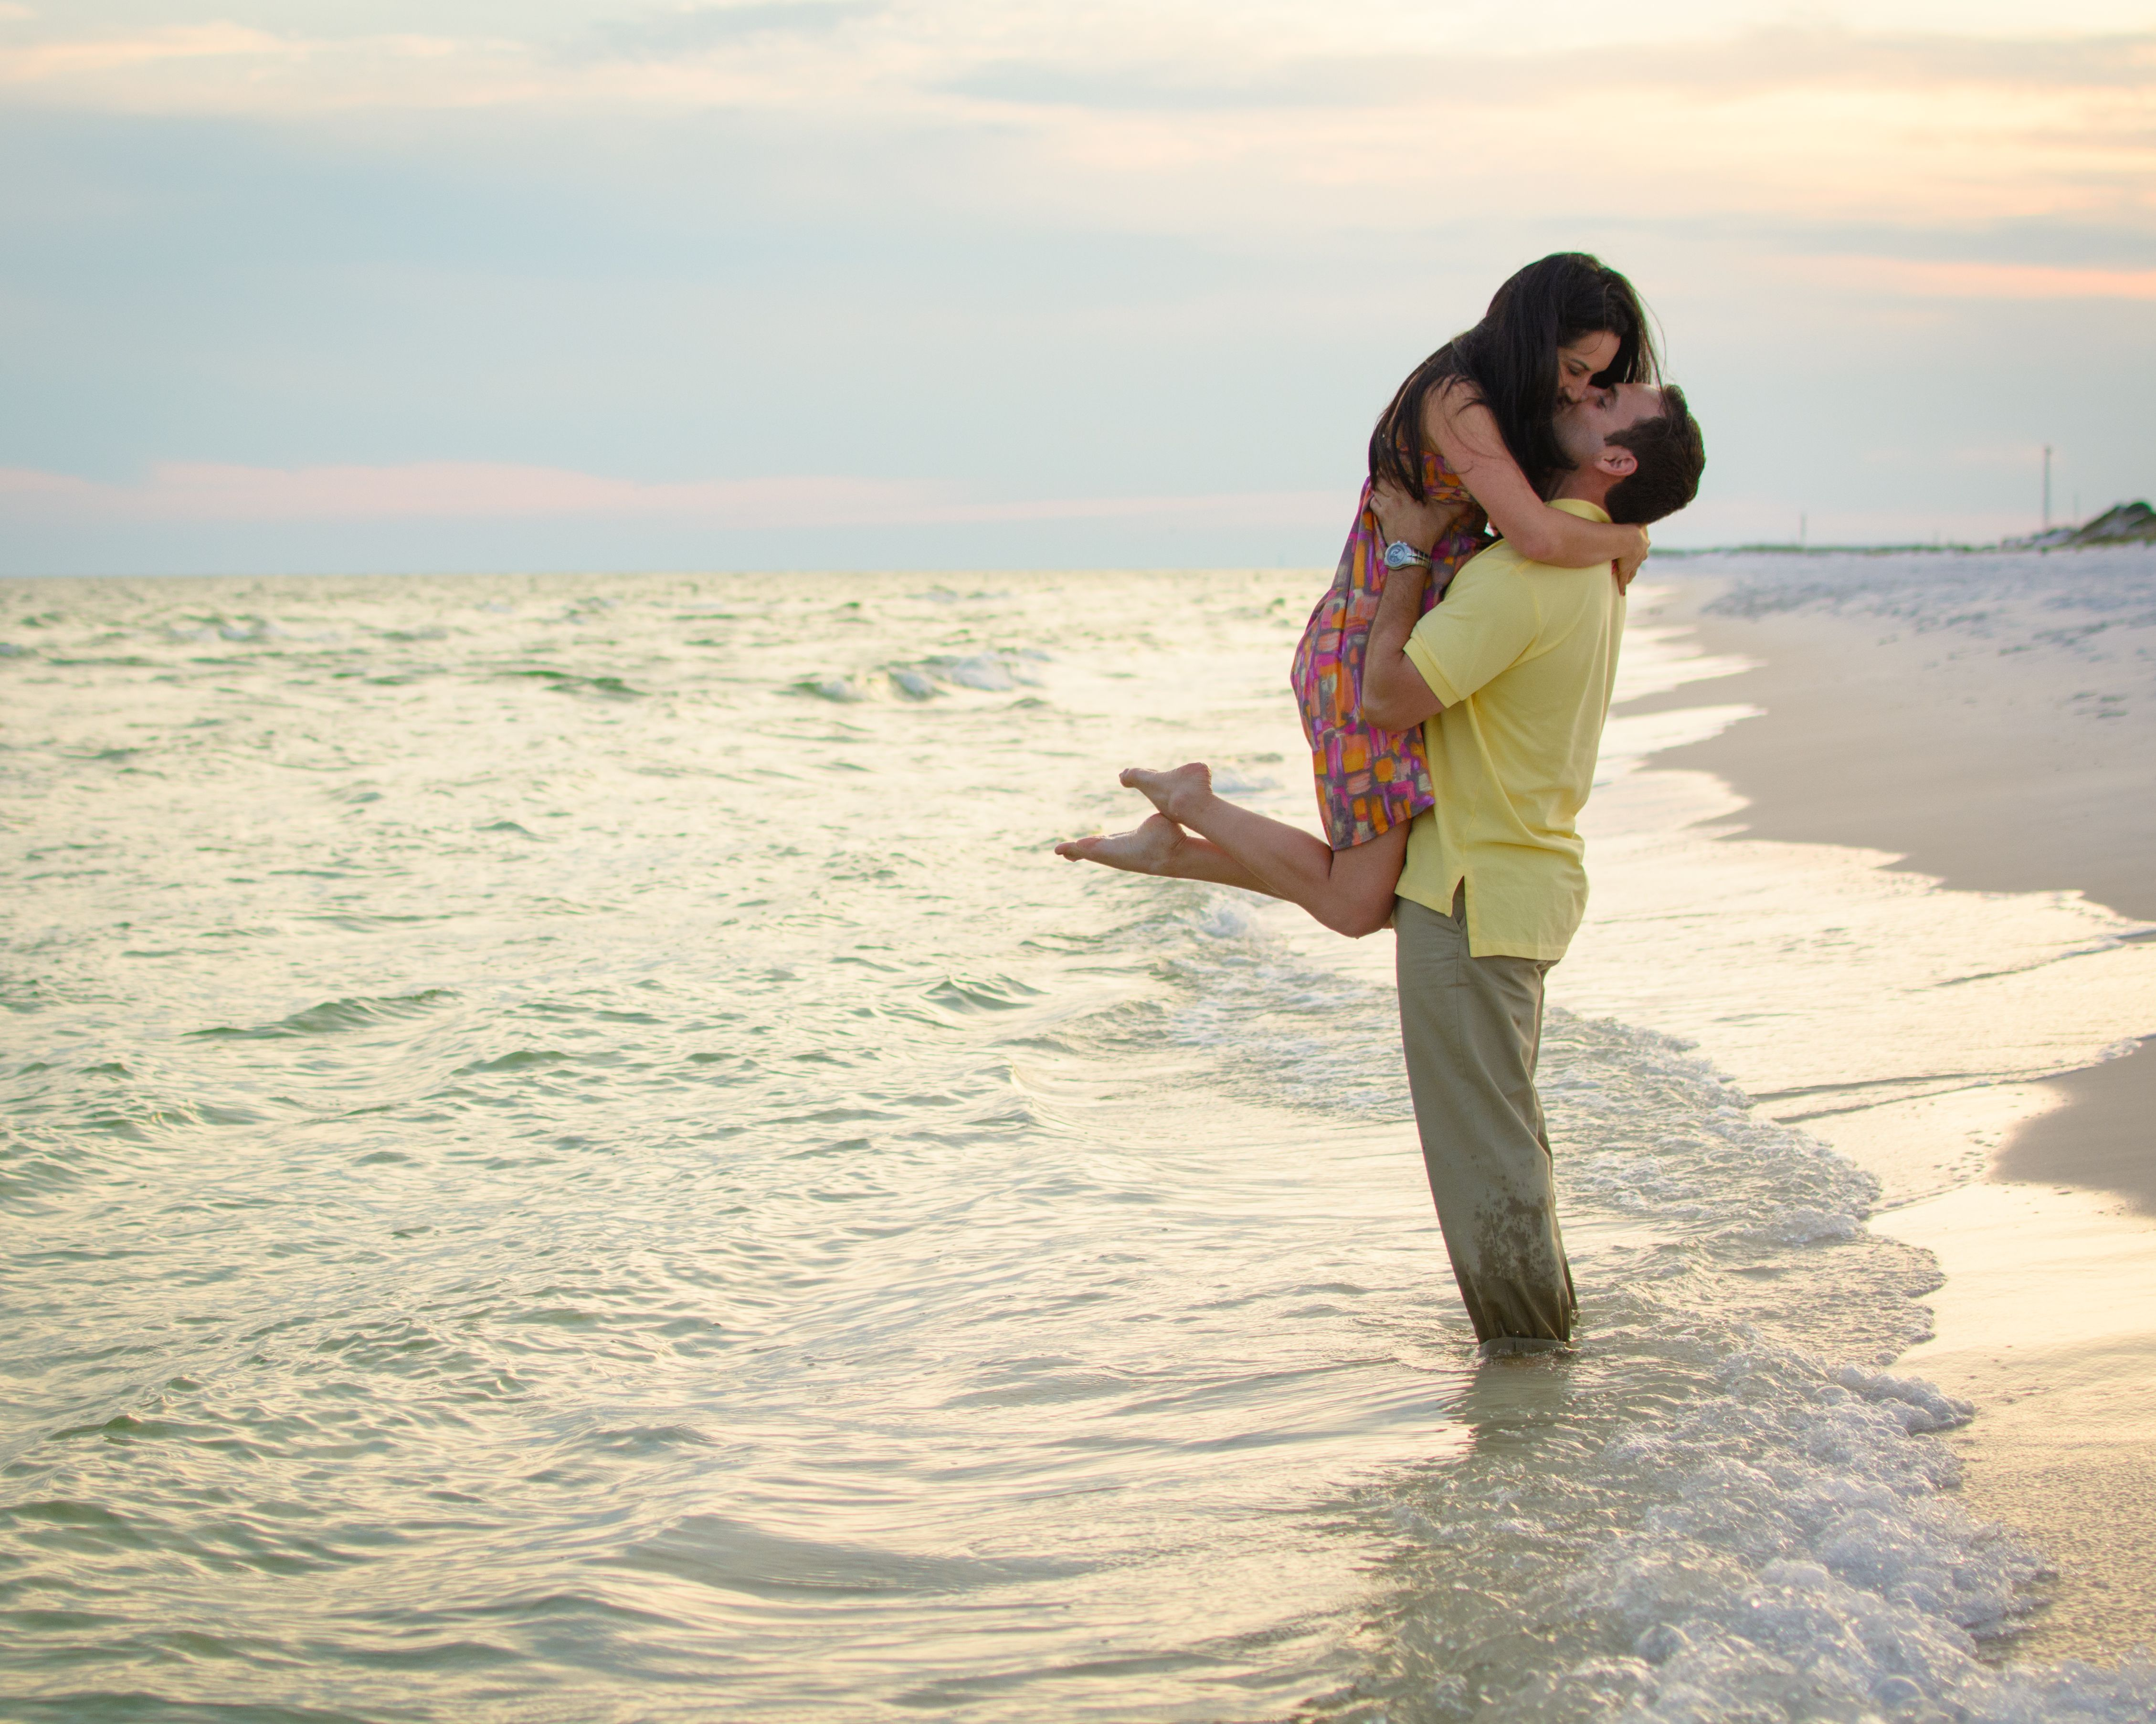 Such a beautiful couple #beach #kiss #sunset #engaged